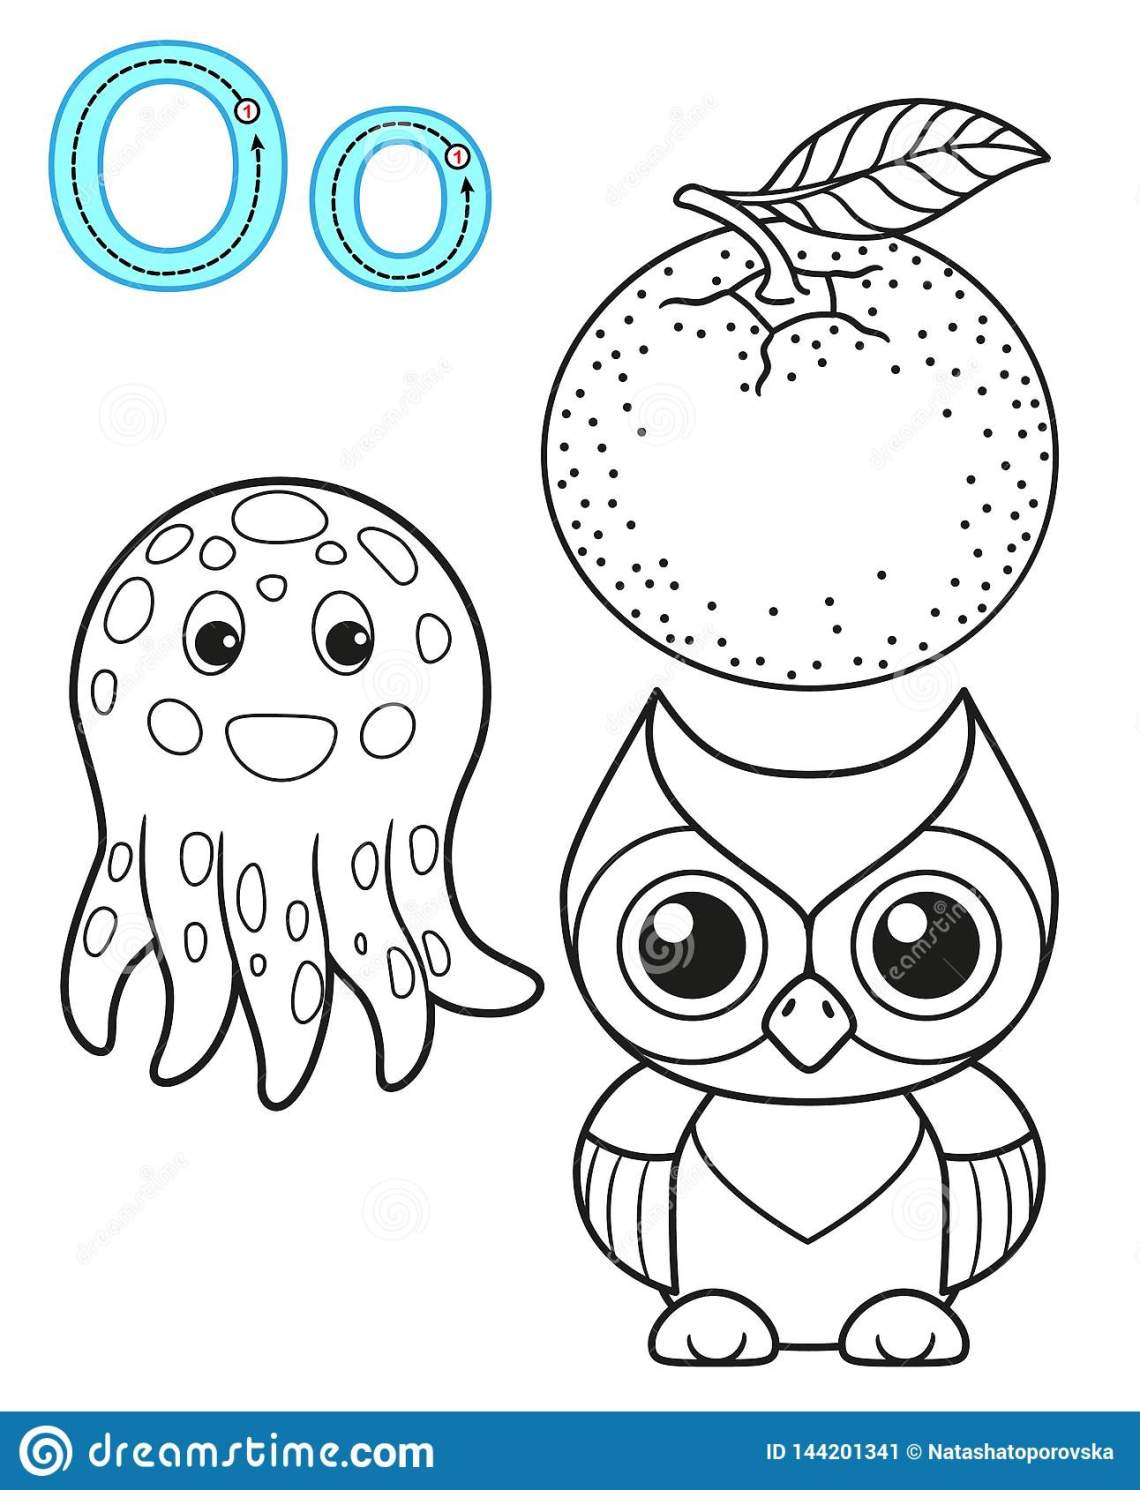 Printable Coloring Page For Kindergarten And Preschool ...   printable coloring pages for kindergarten